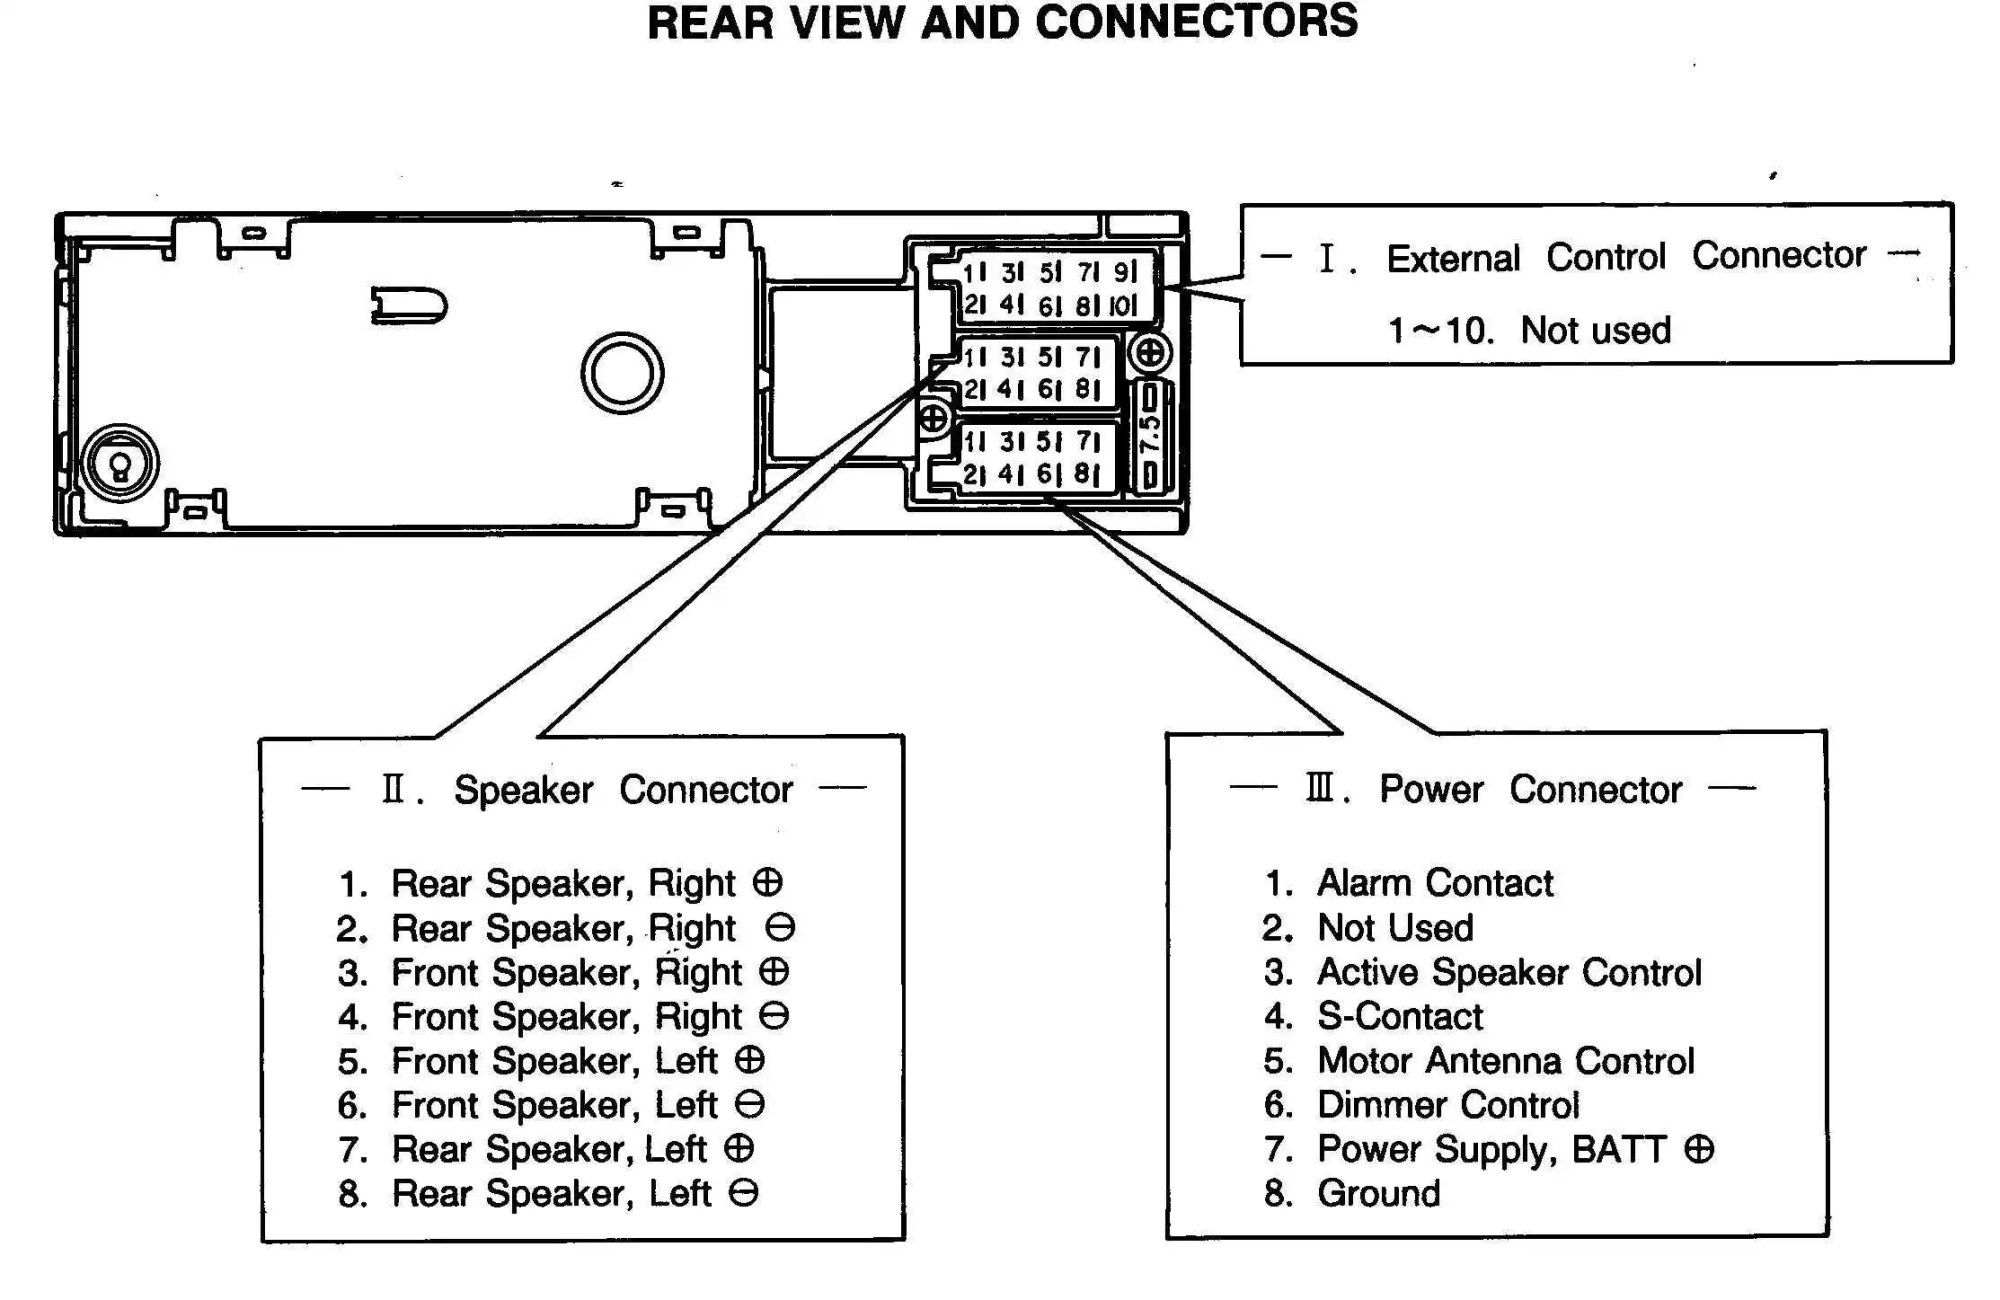 hight resolution of corvette wiring diagram for bose car speakers wiring diagrams scematic stereo speaker wiring diagram chrysler maserati